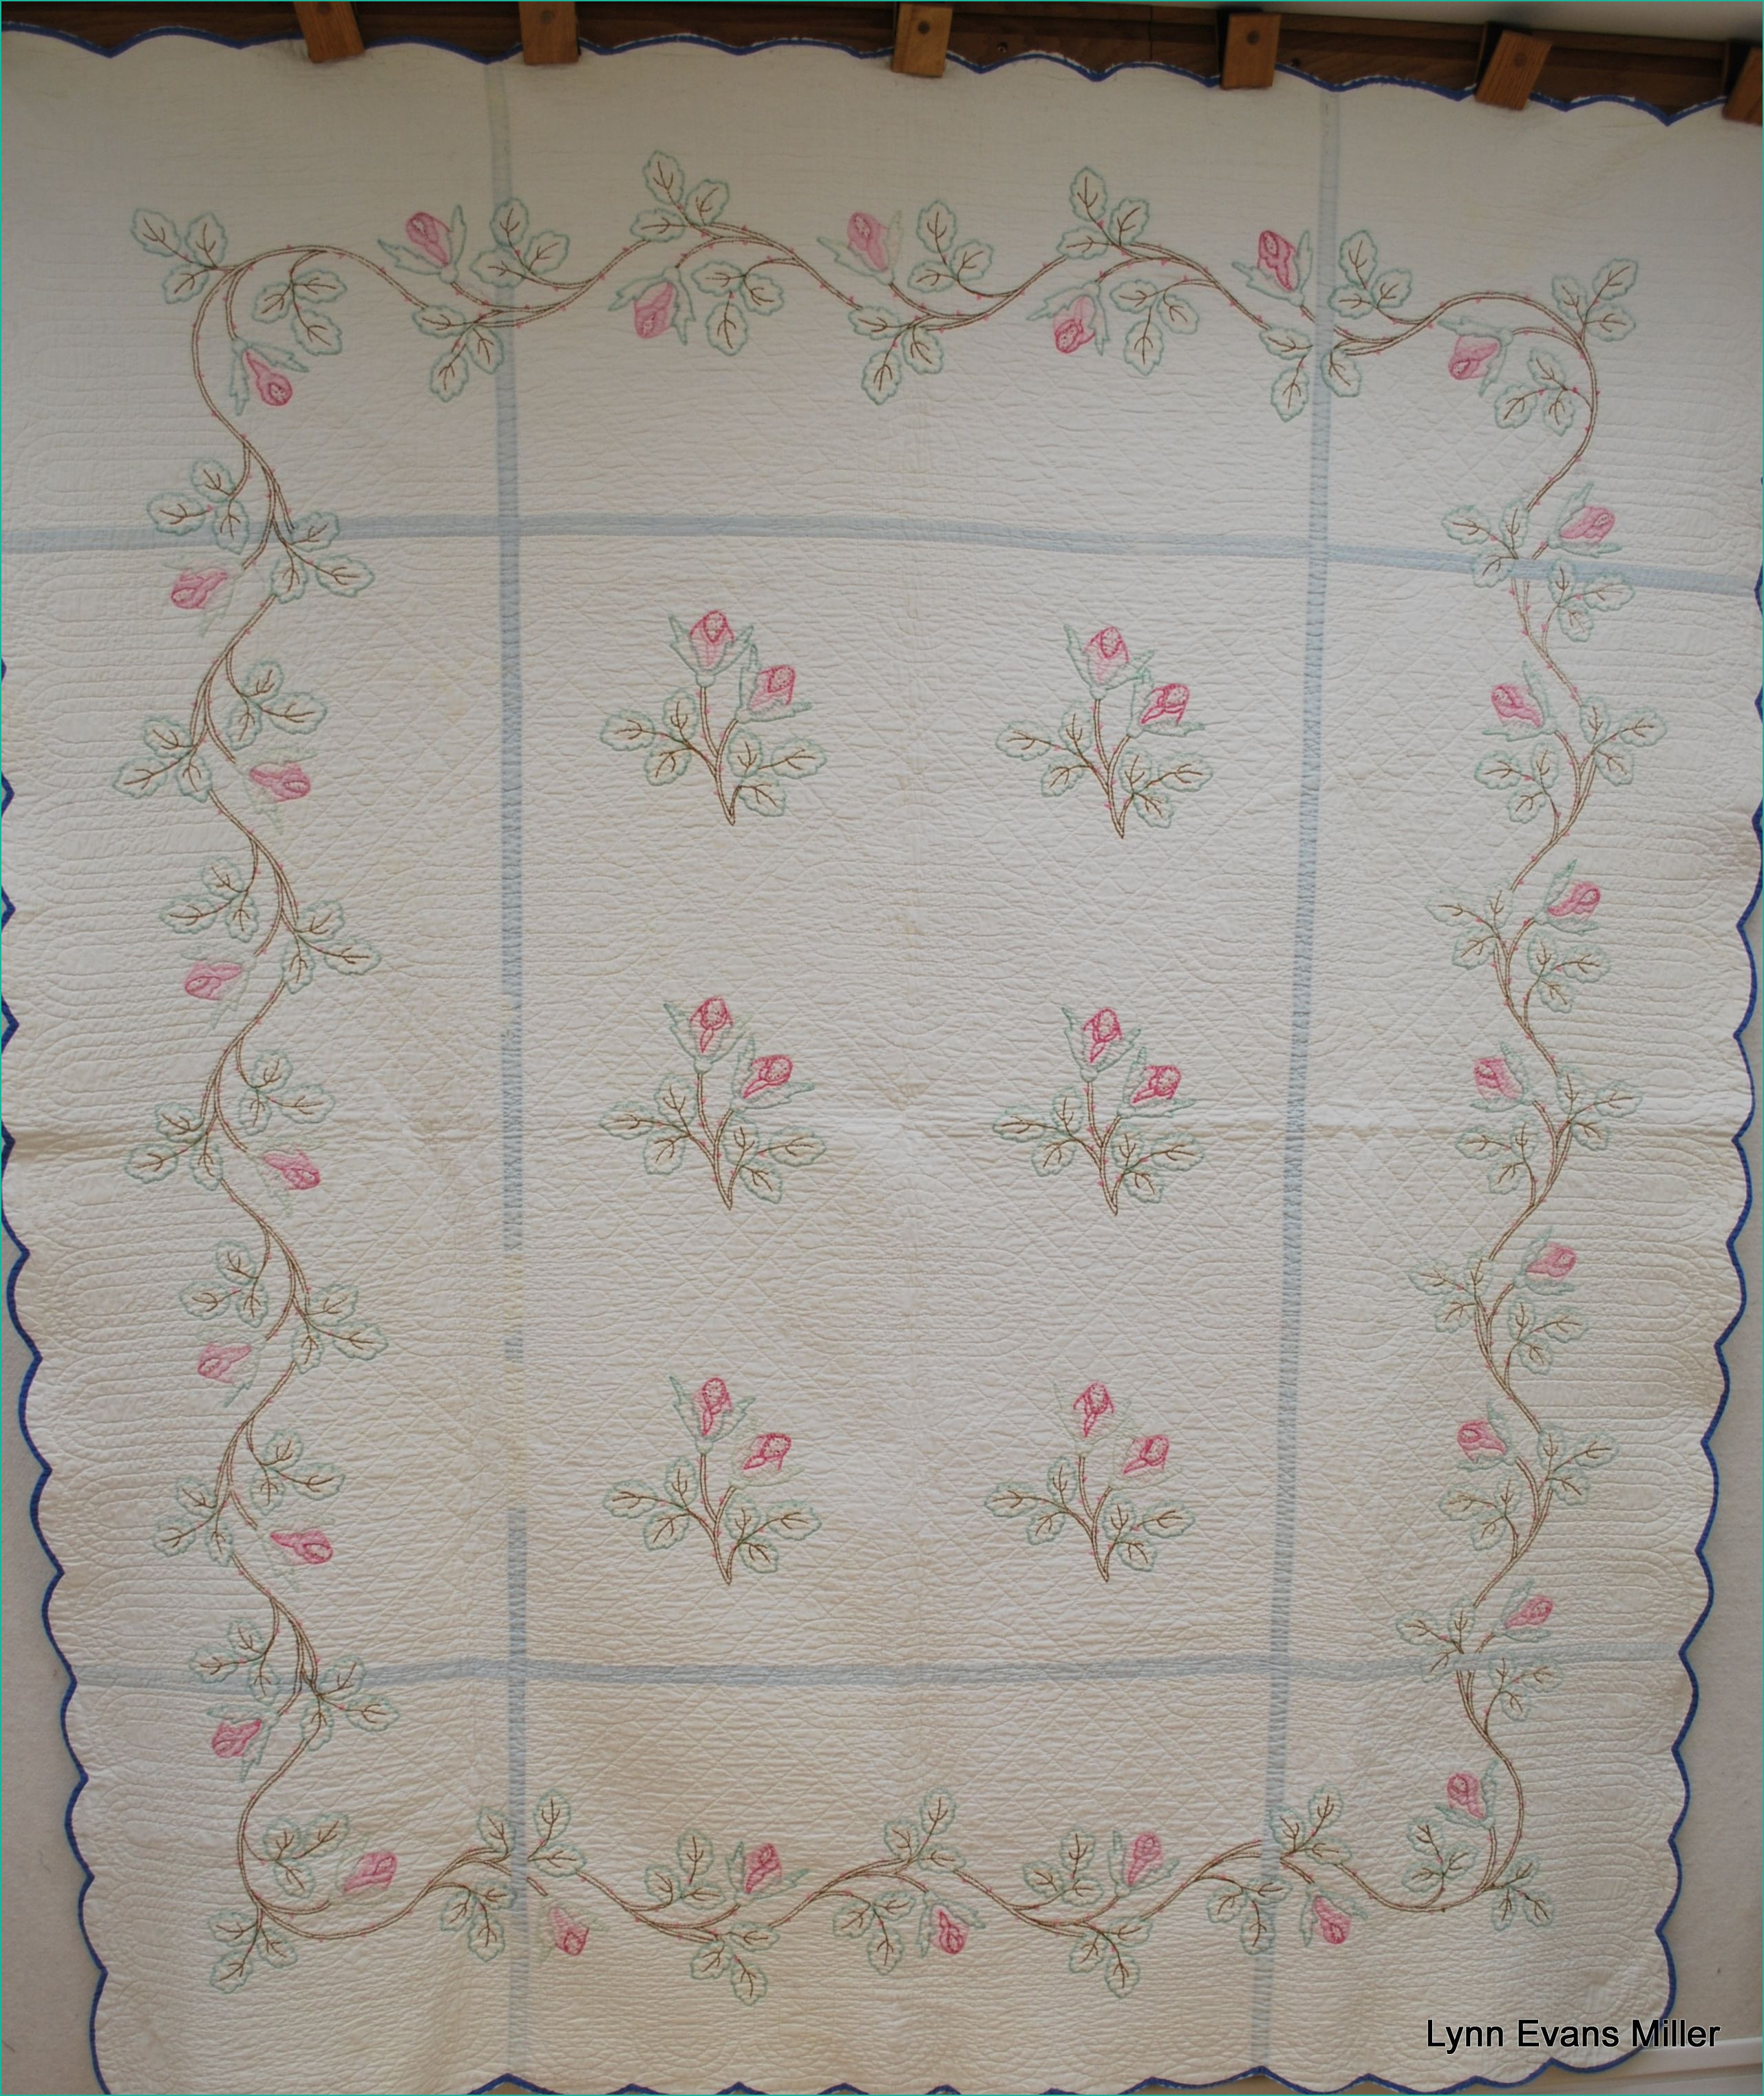 Stamped Embroidery Patterns Pre Stamped Quilt Blocks For Hand Embroidery Easy 35 R Bucillia